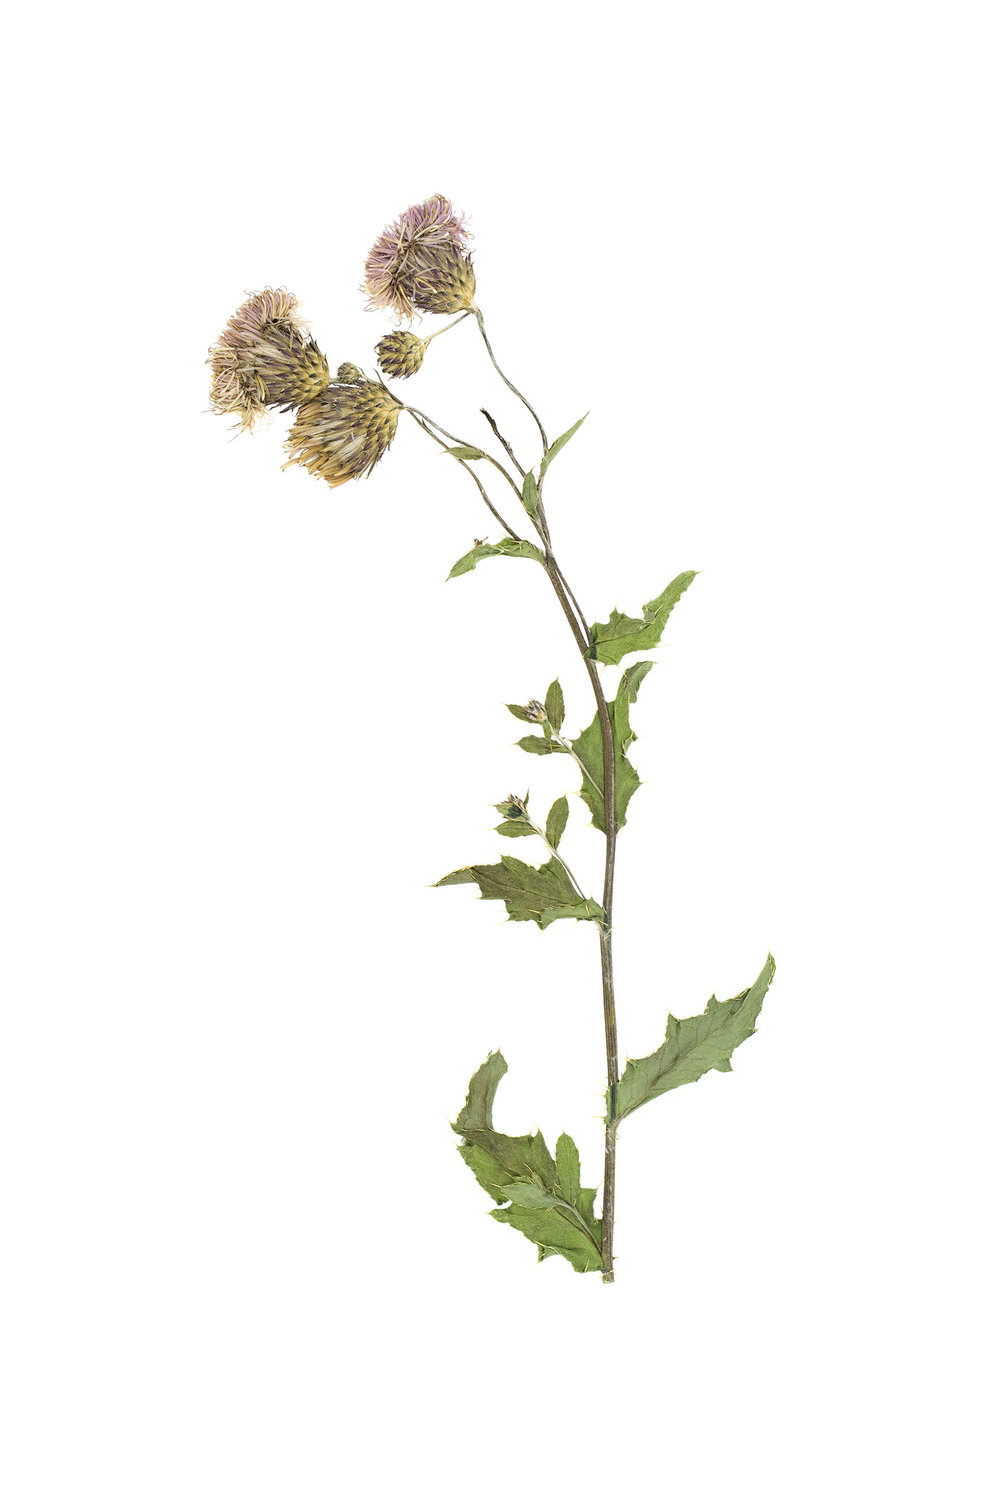 New! Cirsium arvense / Creeping Thistle